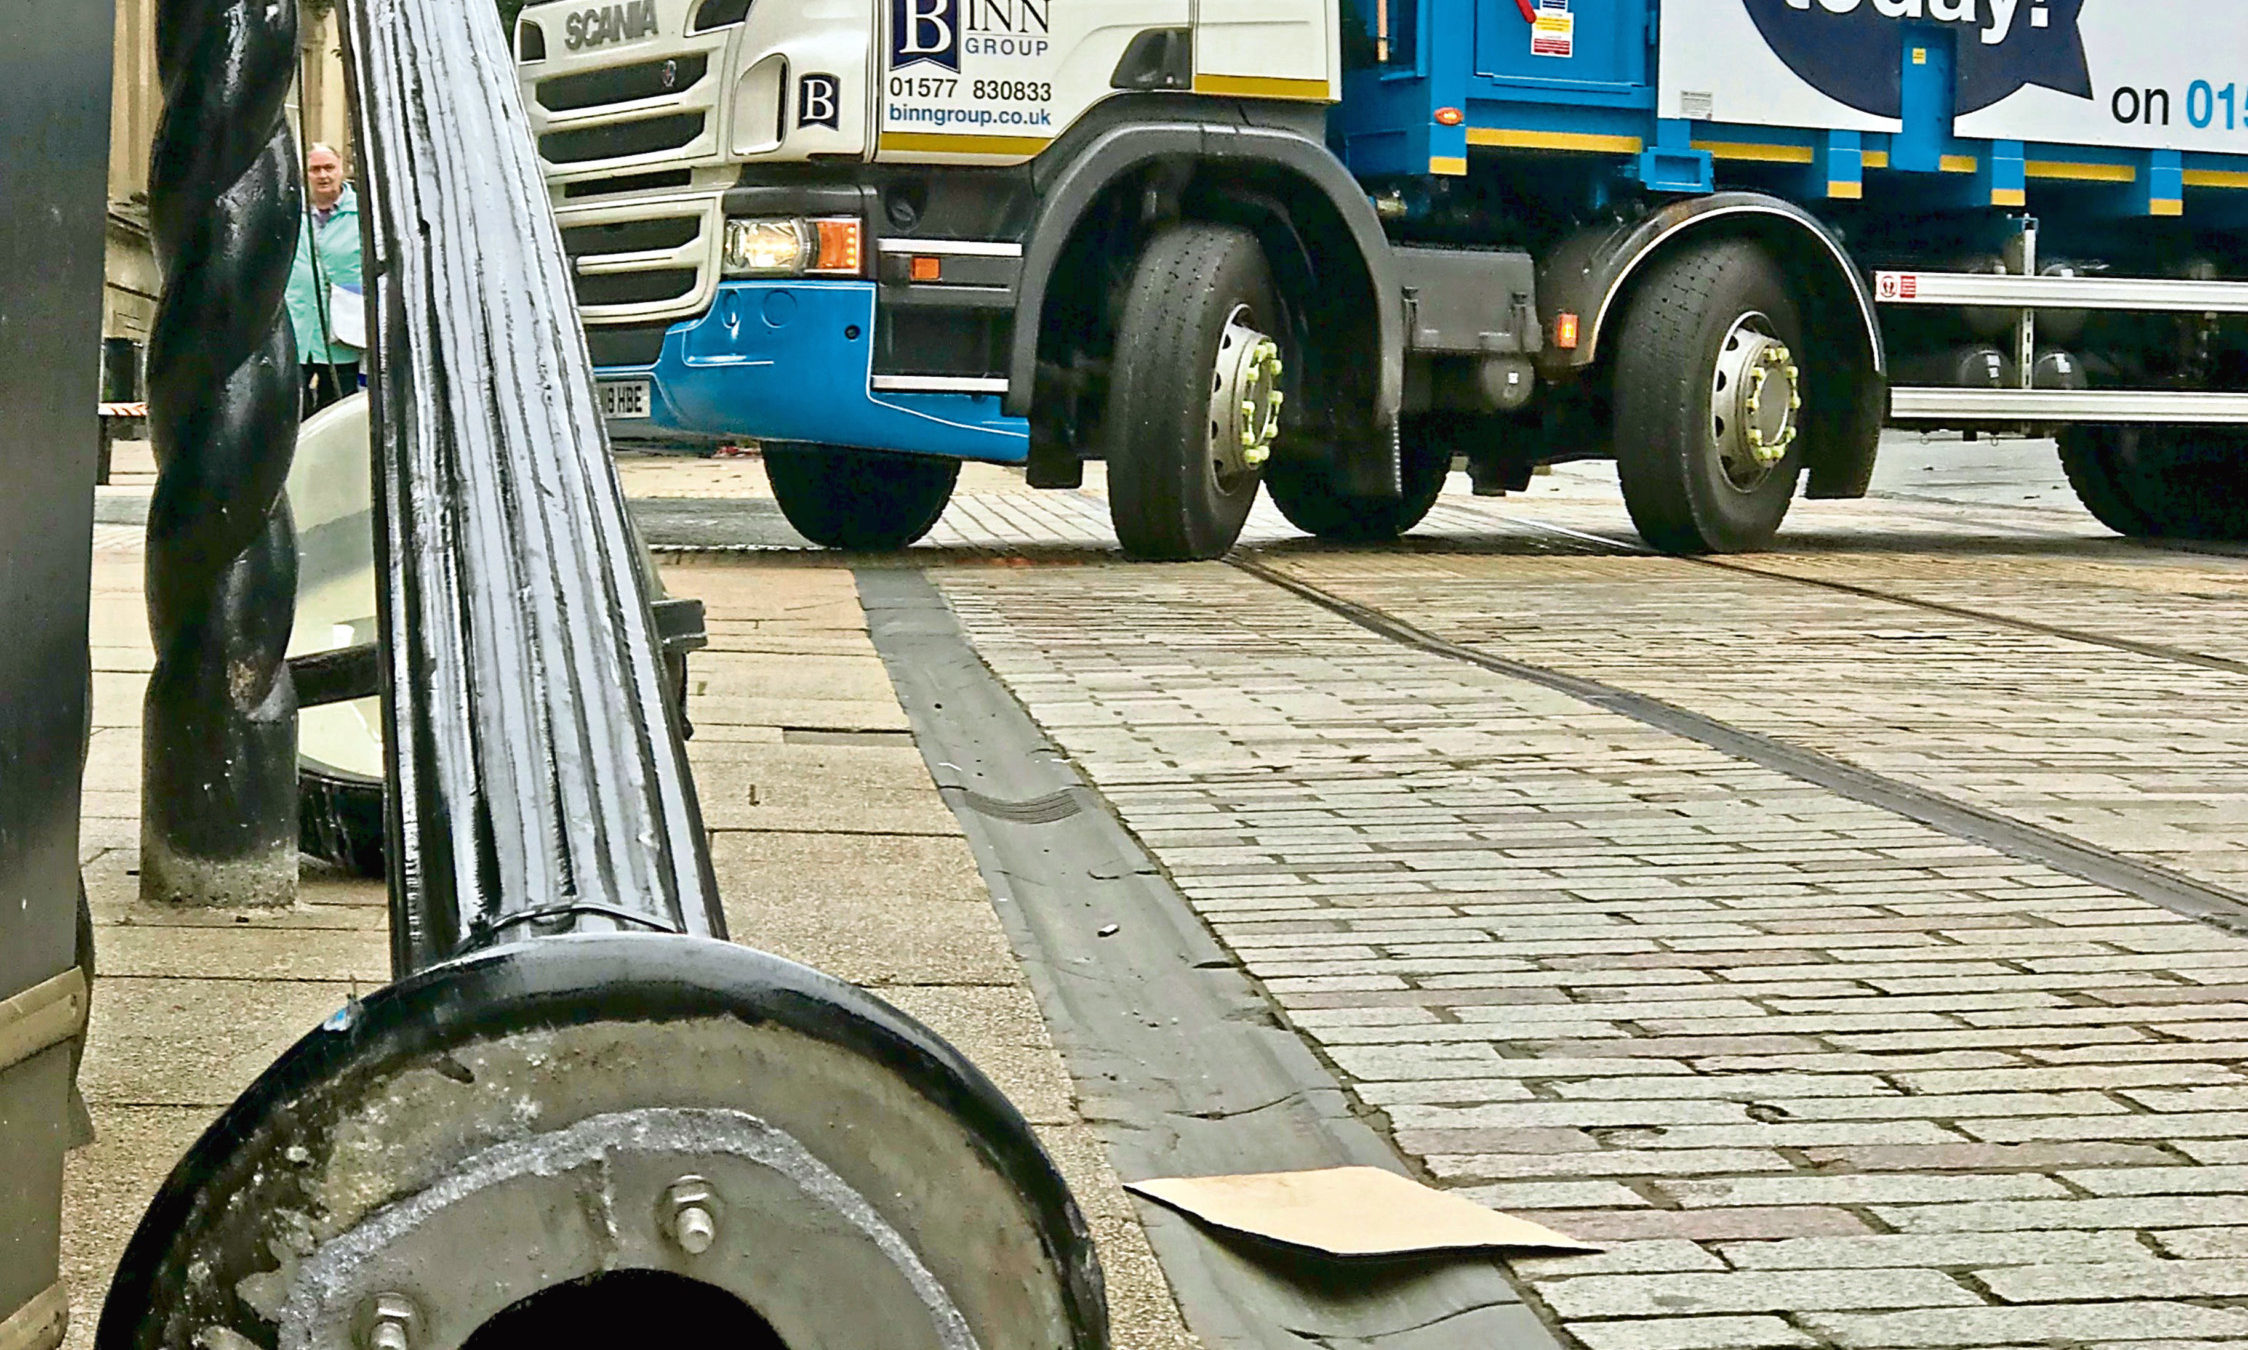 A Binn Group bin lorry reversed into a lamppost on the Murraygate, knocking it over